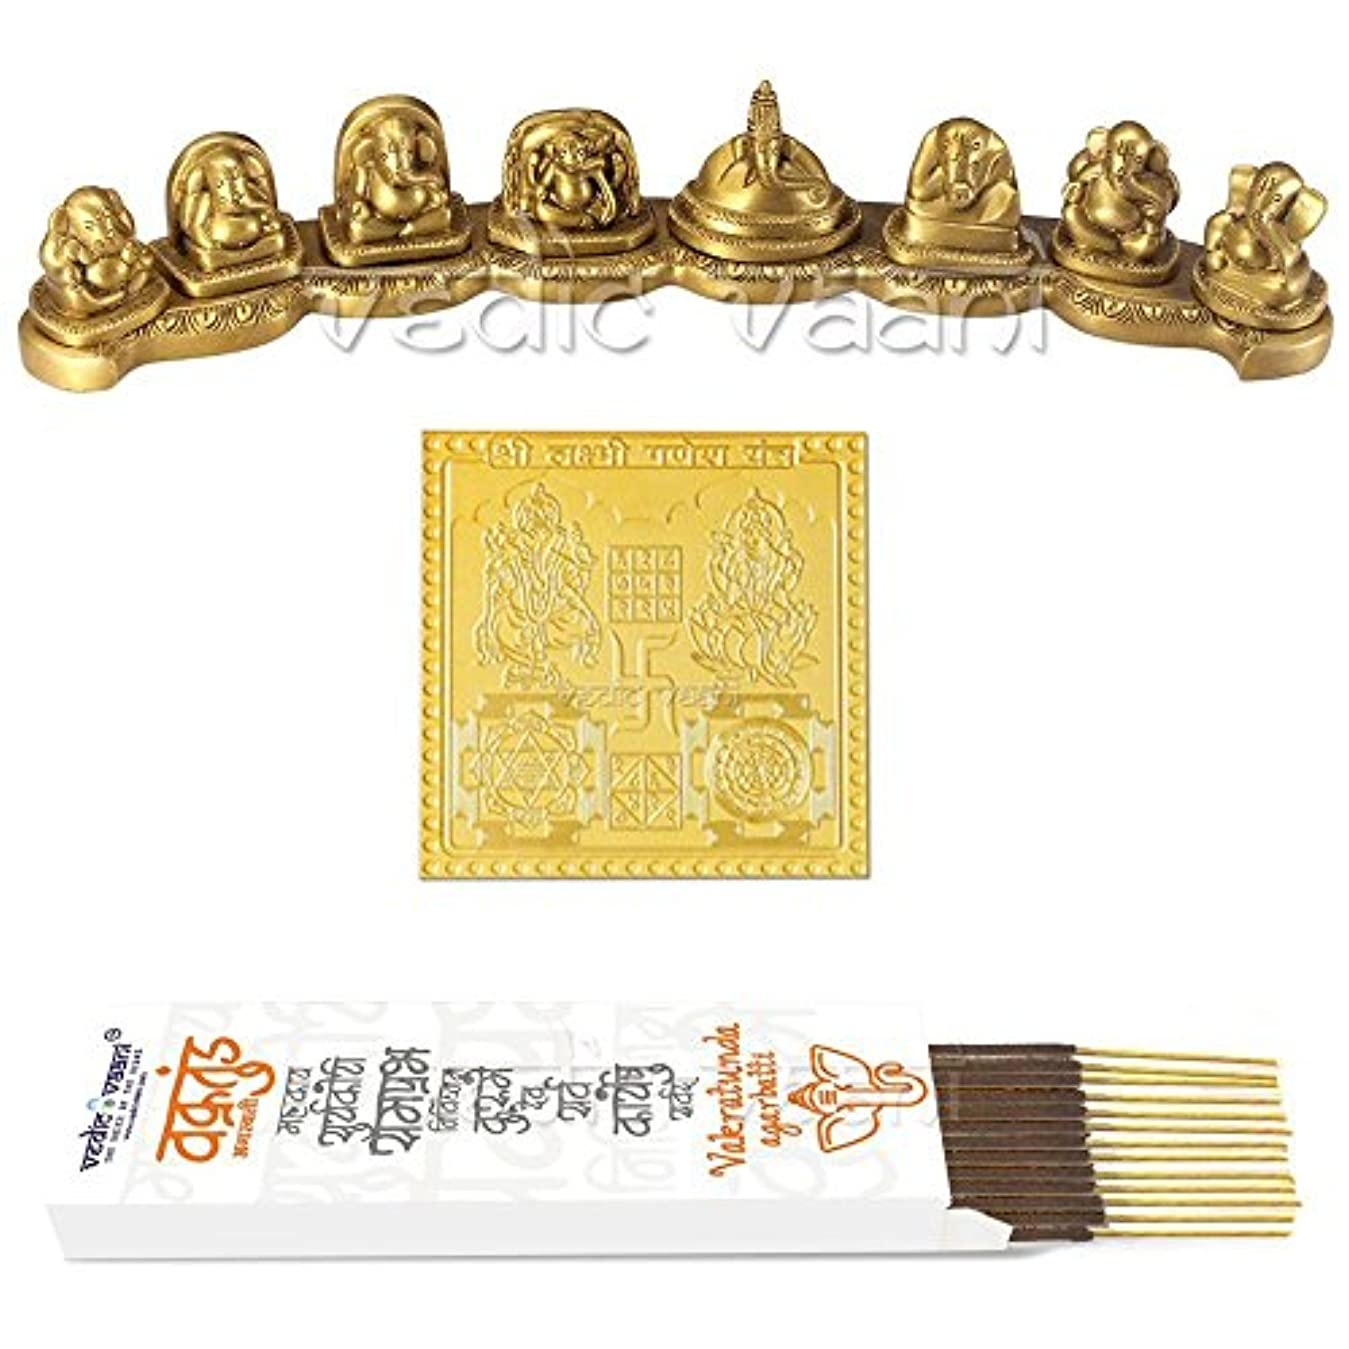 王室舌なインシュレータAshtavinayak Ganpati Bappa Idol In Brass WithヤントラとVakratund Incense Sticks – Vedic Vaani